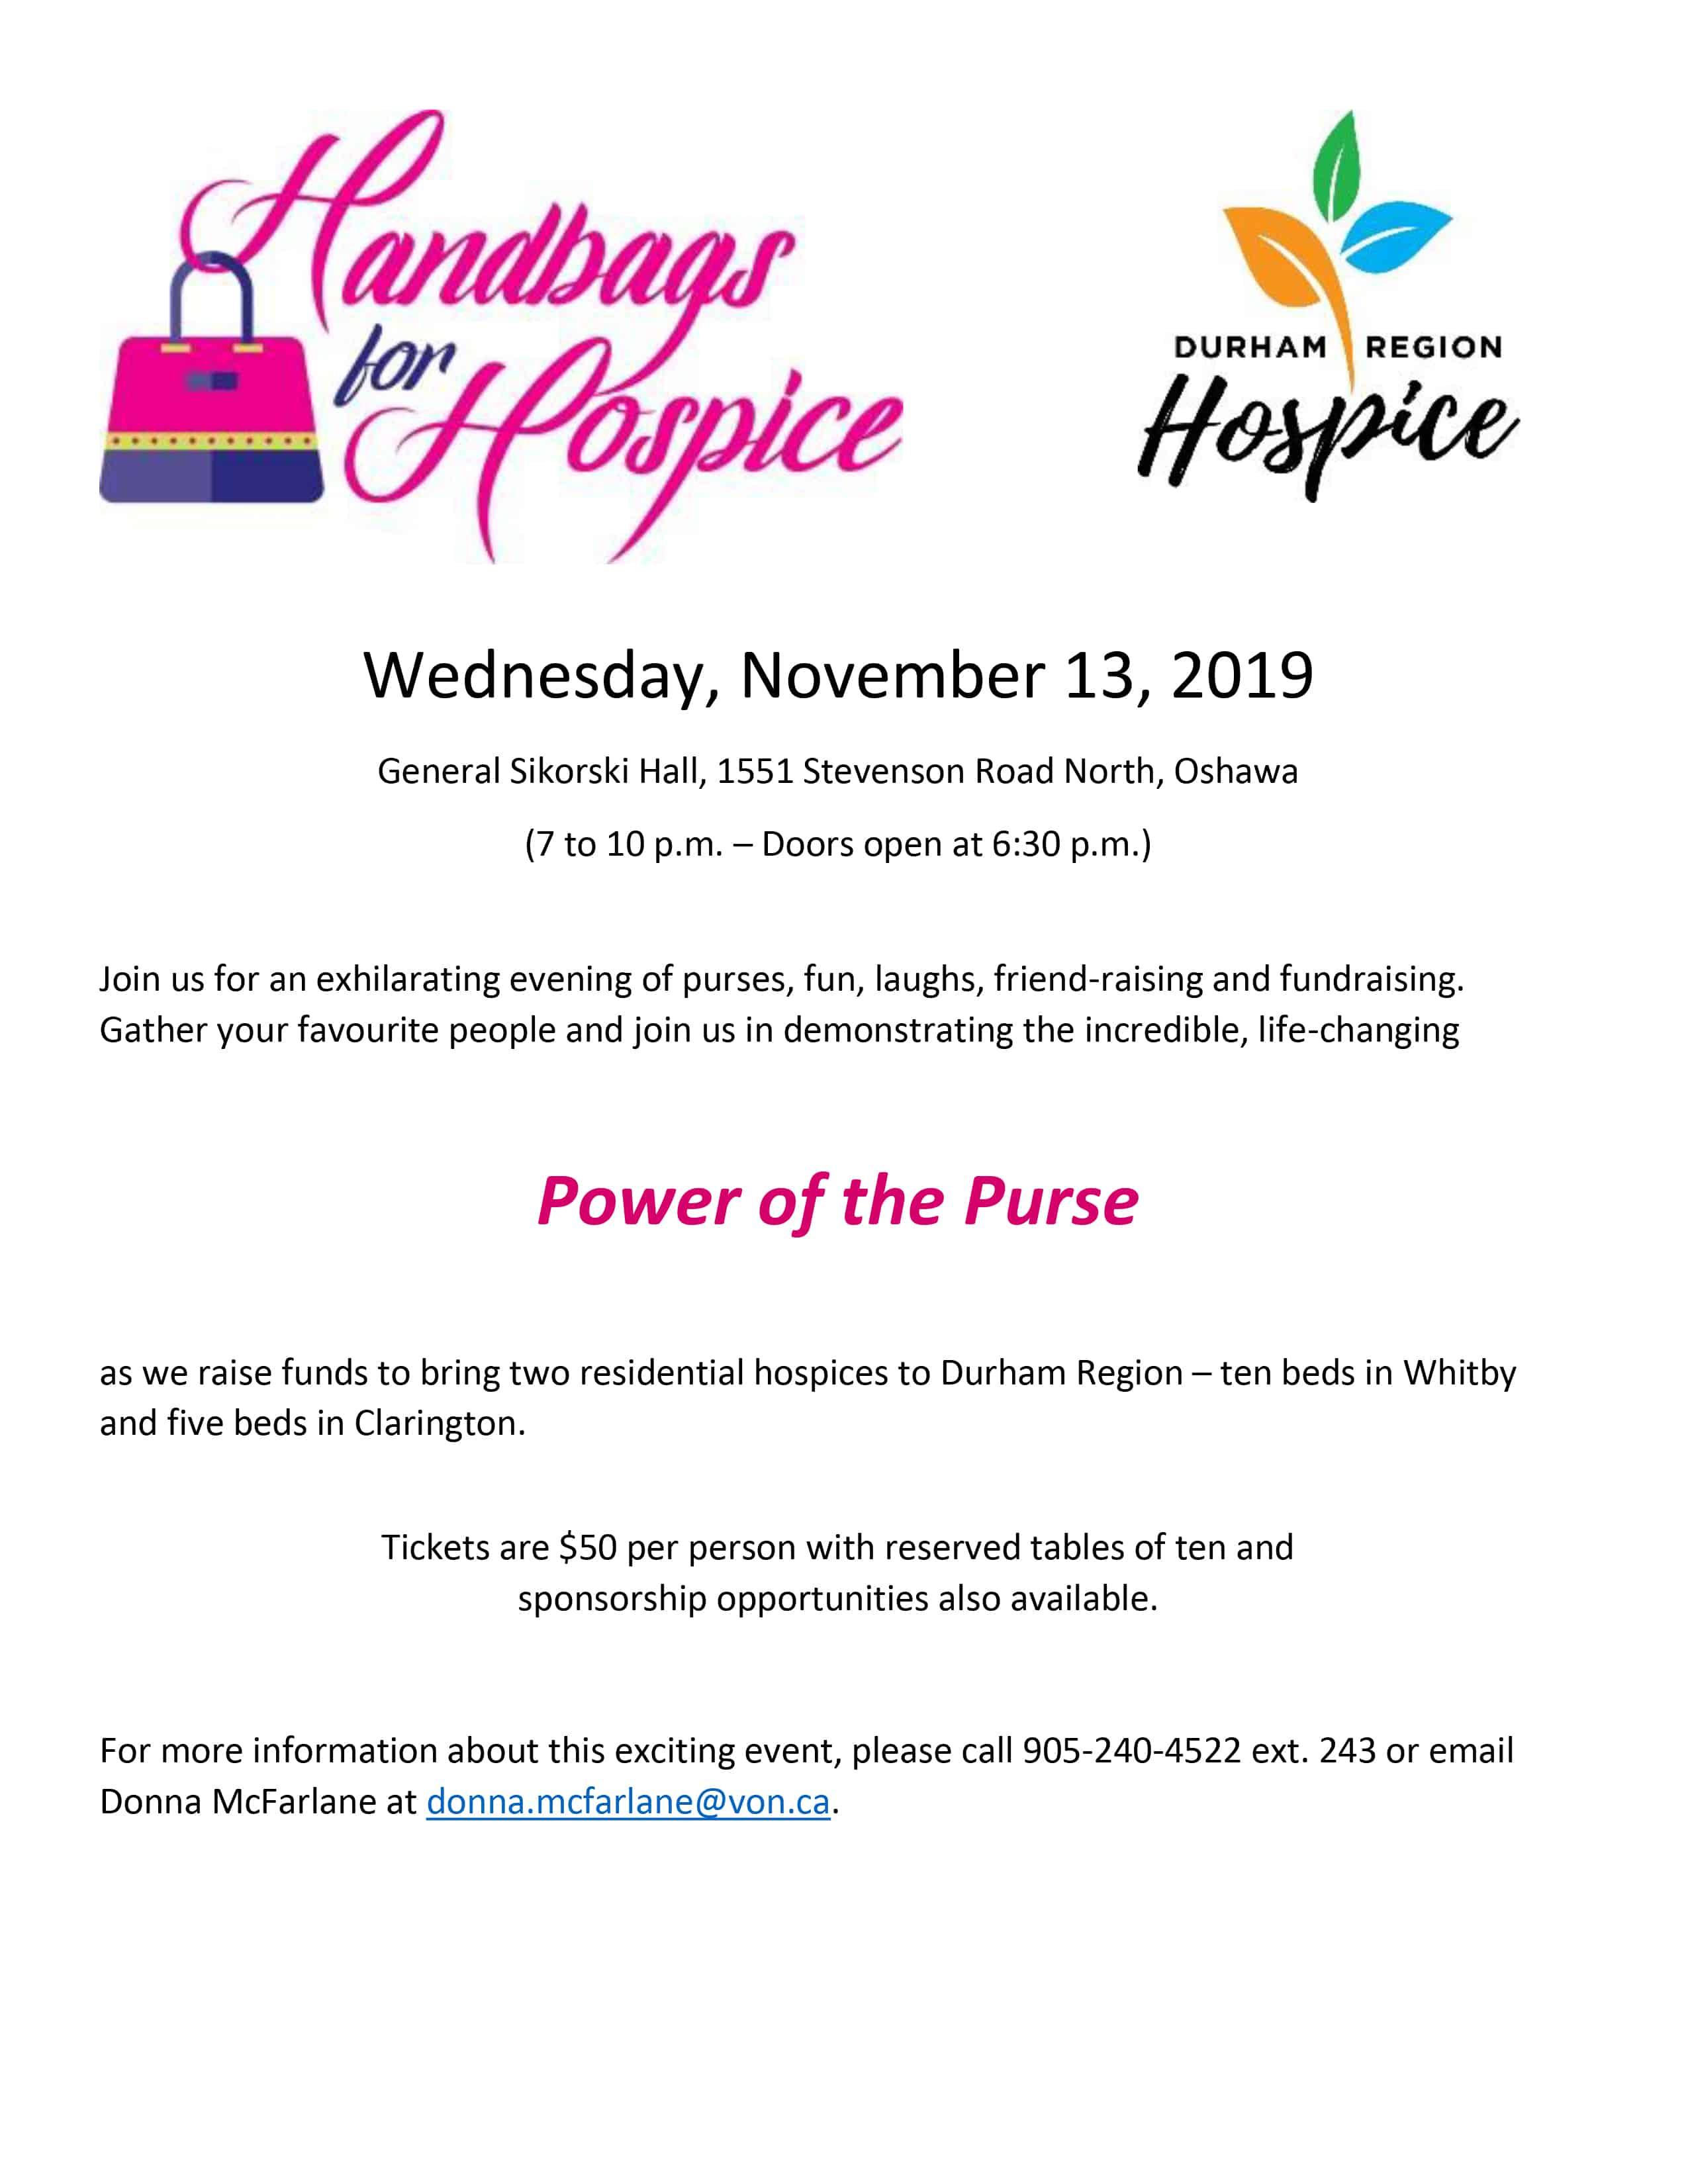 Handbags for Hospice – Wednesday, November 13, 2019